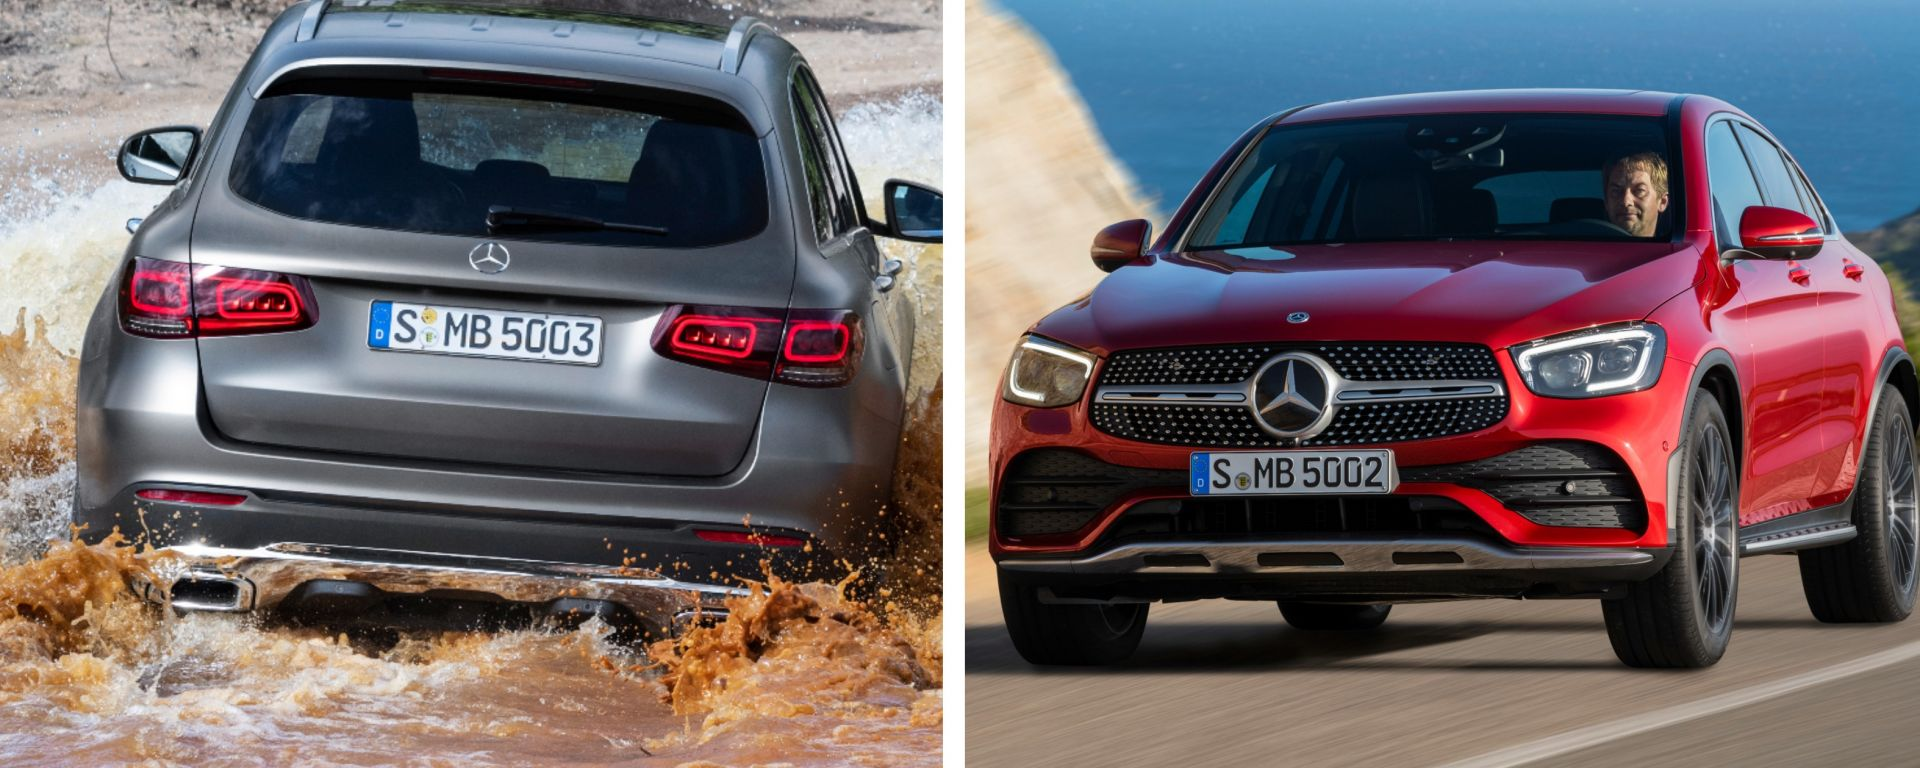 Mercedes GLC vs Mercedes GLC Coupé